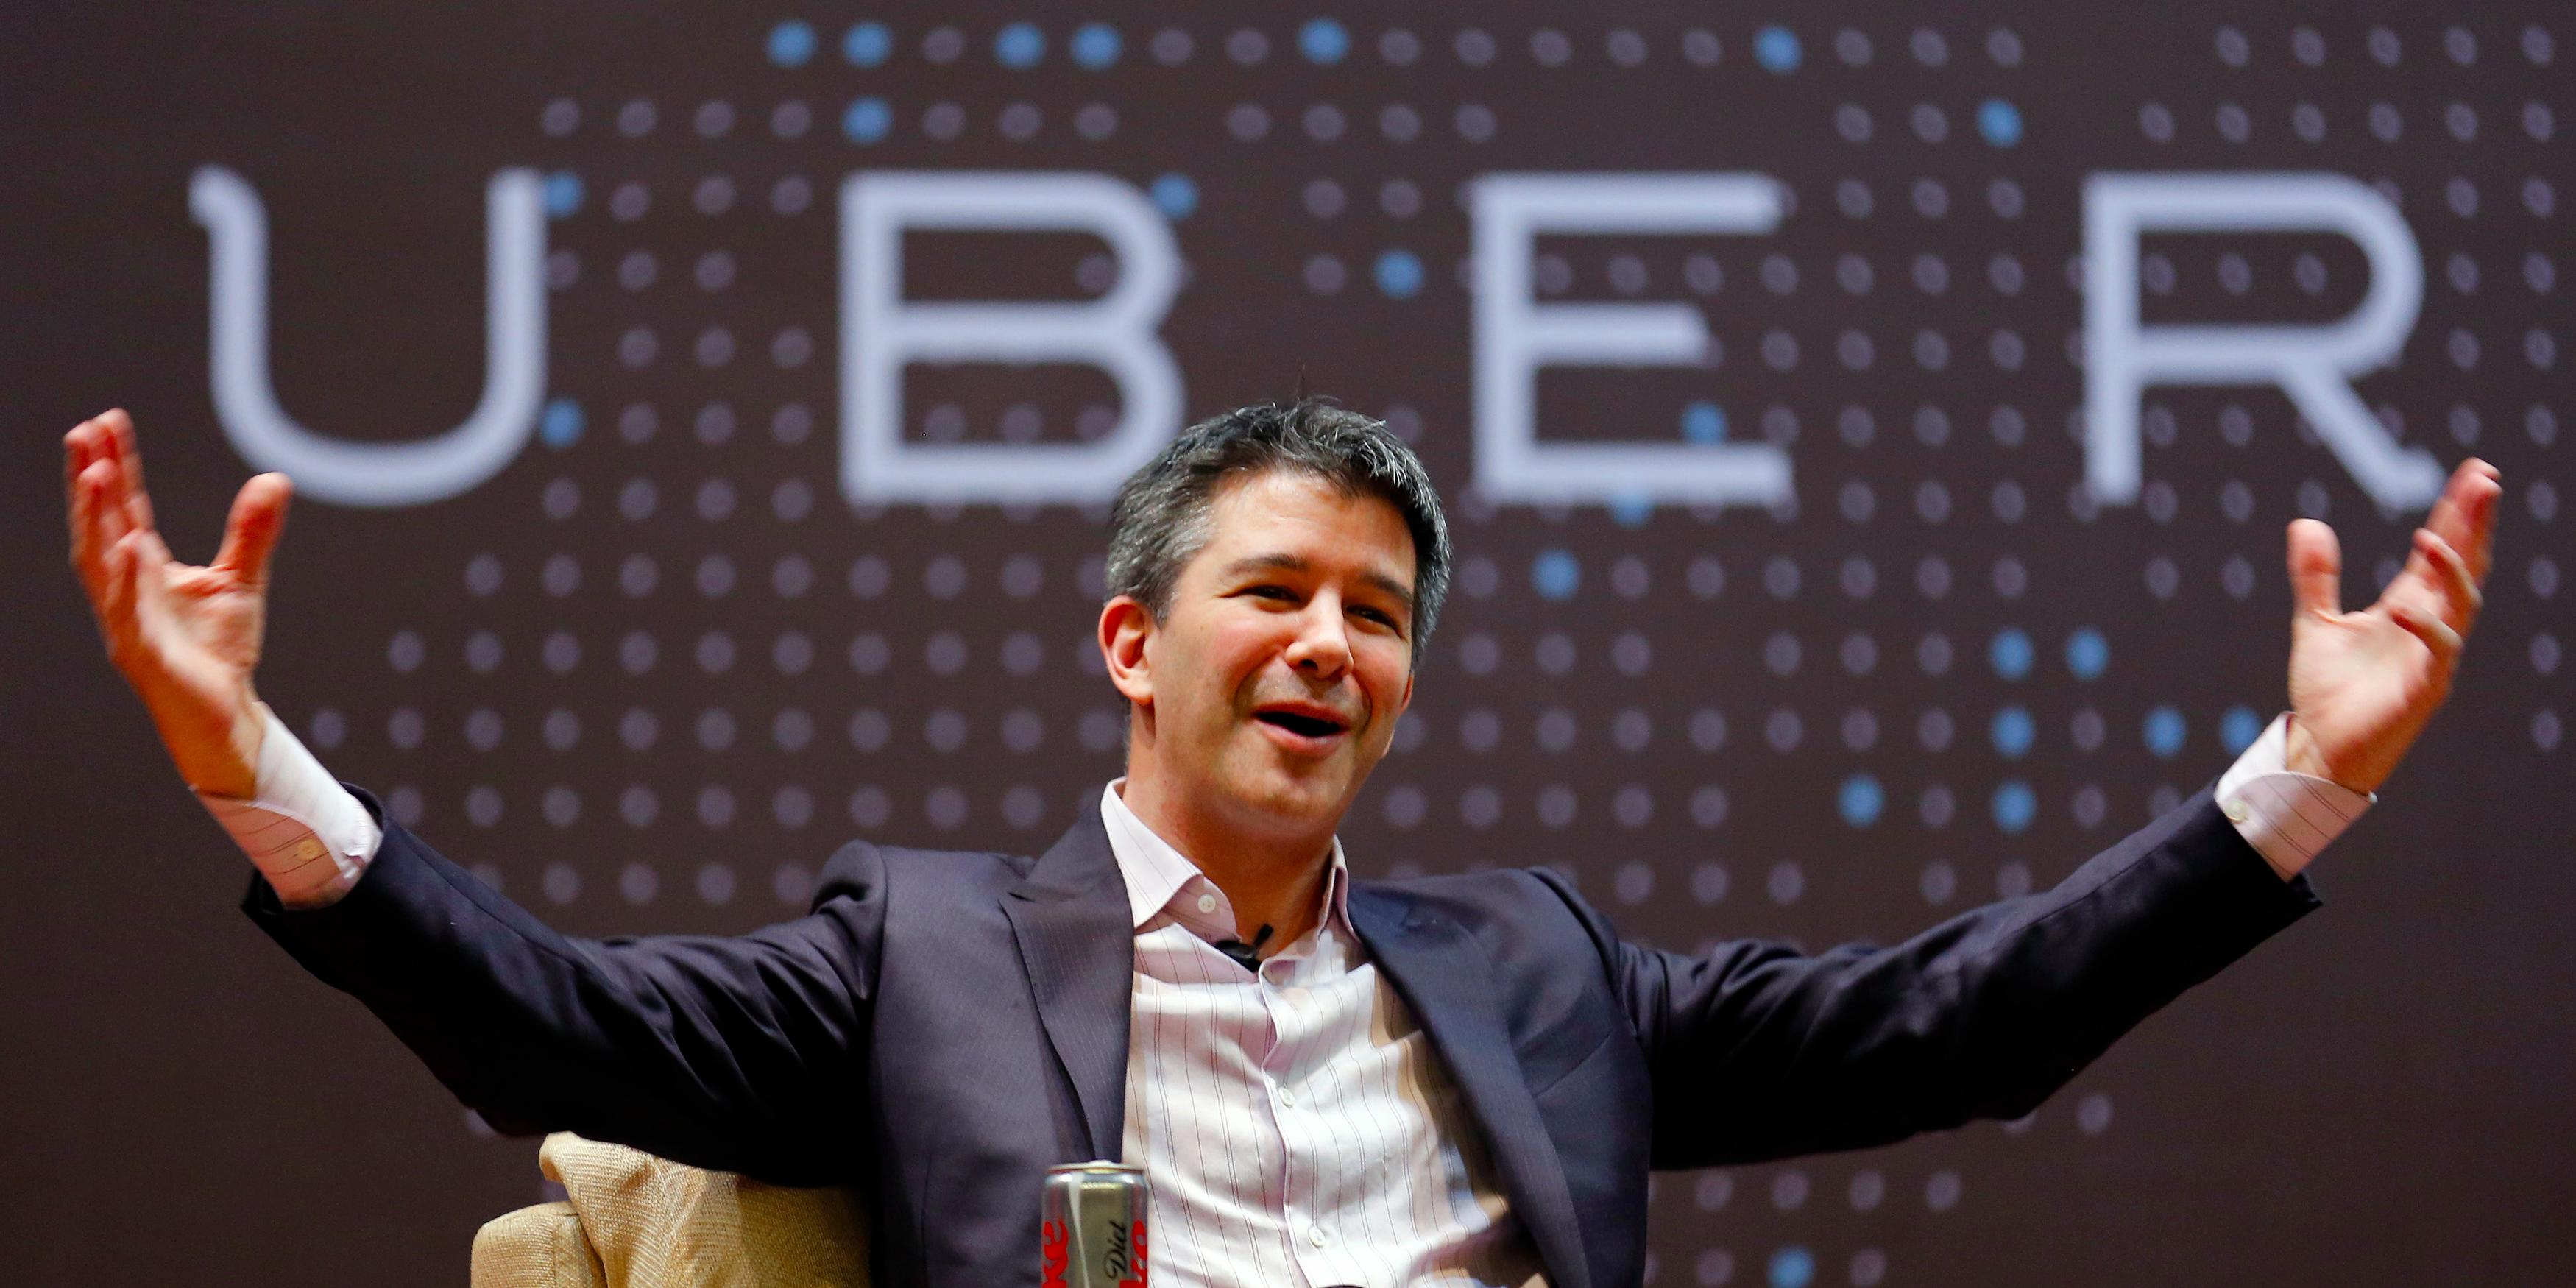 We're getting a glimpse of the real Uber — and it's a big surprise